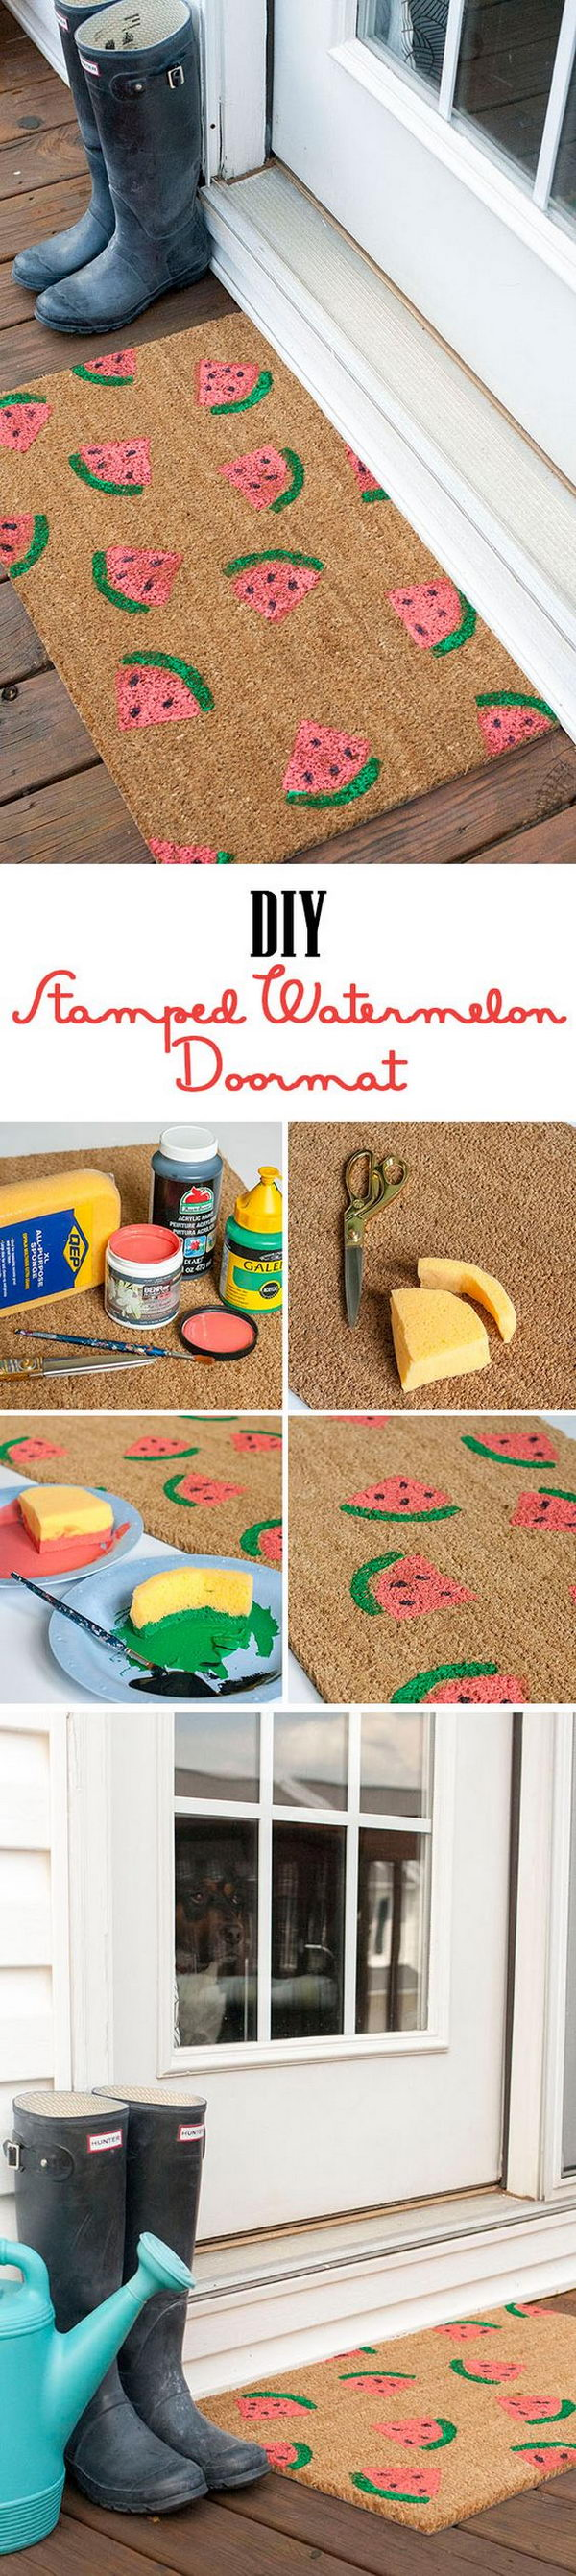 DIY Stamped Watermelon Doormat.